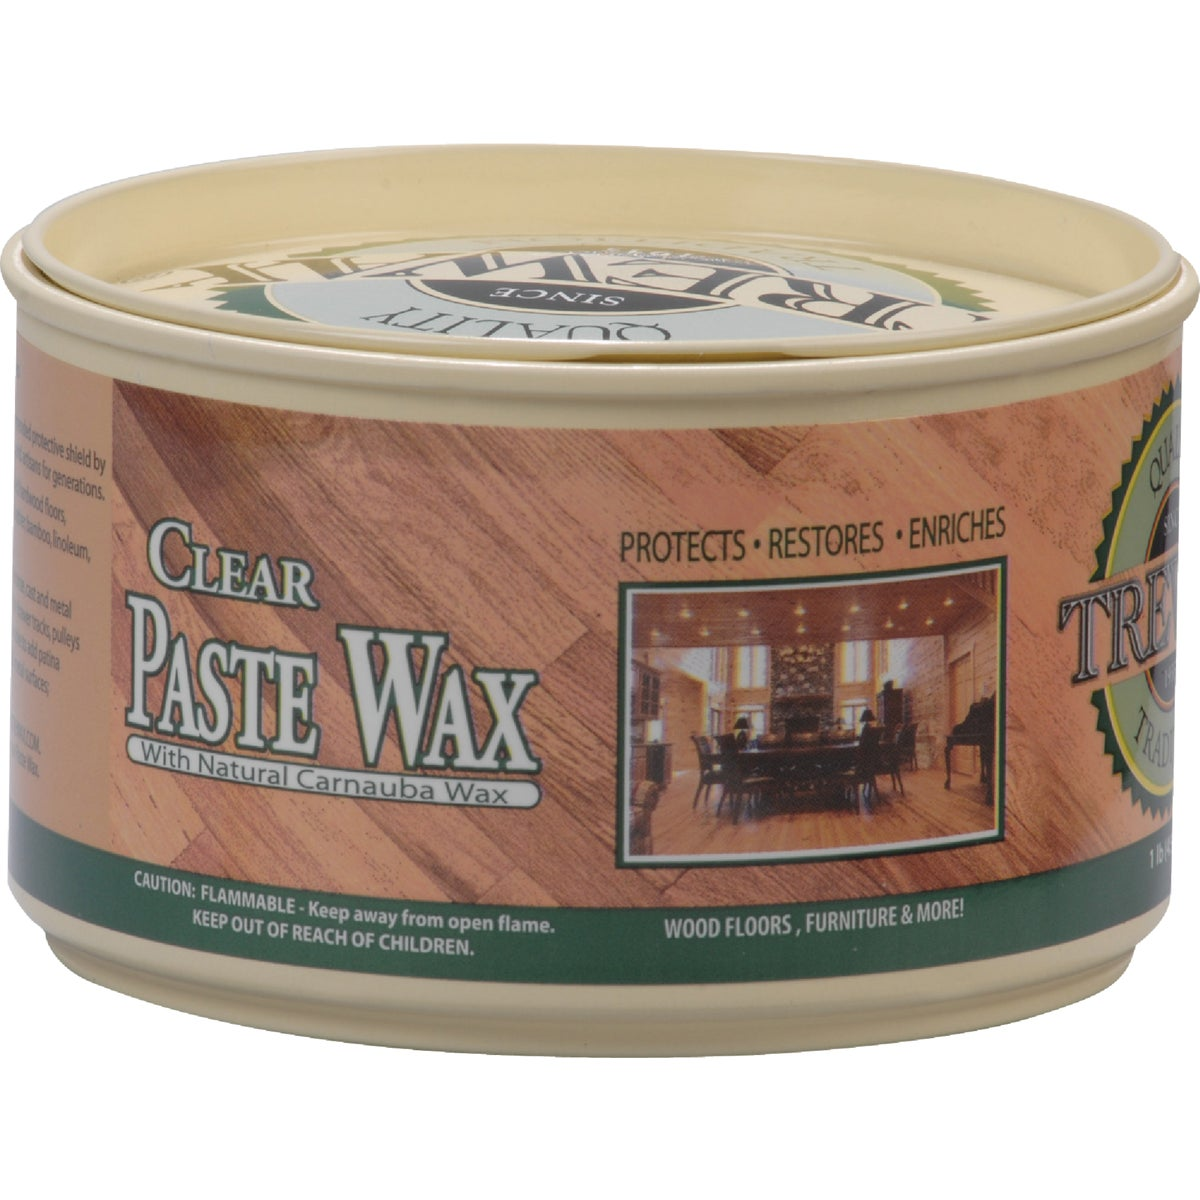 12.35OZ CLEAR PASTE WAX - 887101016-12PK by Beaumont Products